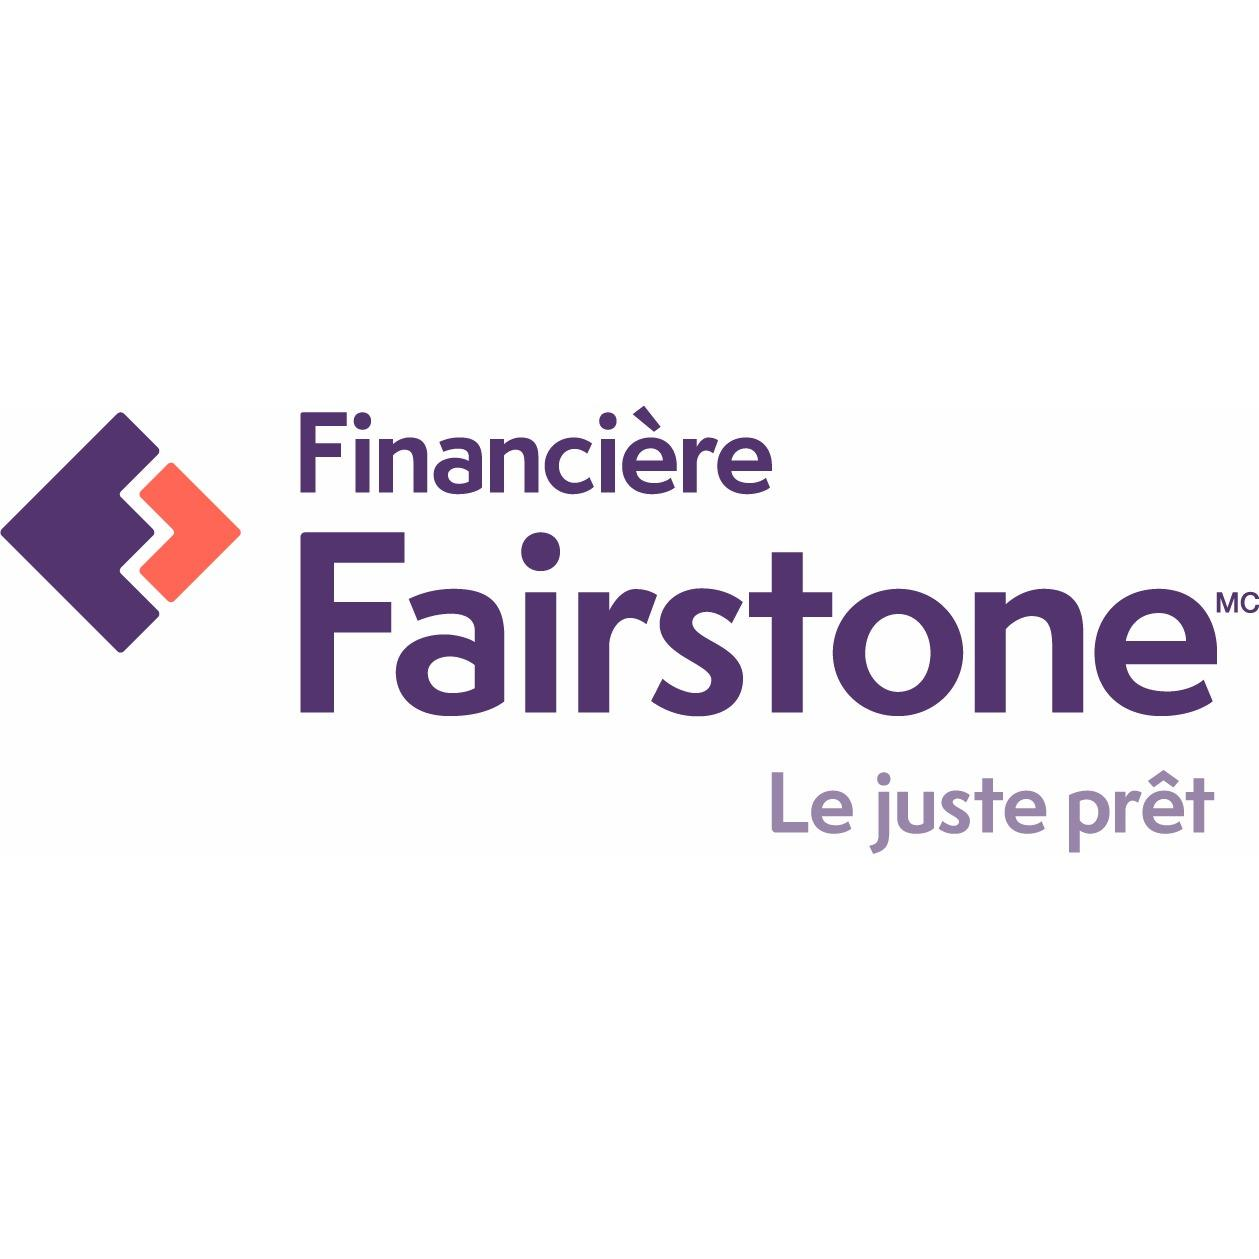 Fairstone, formerly CitiFinancial® à Terrebonne